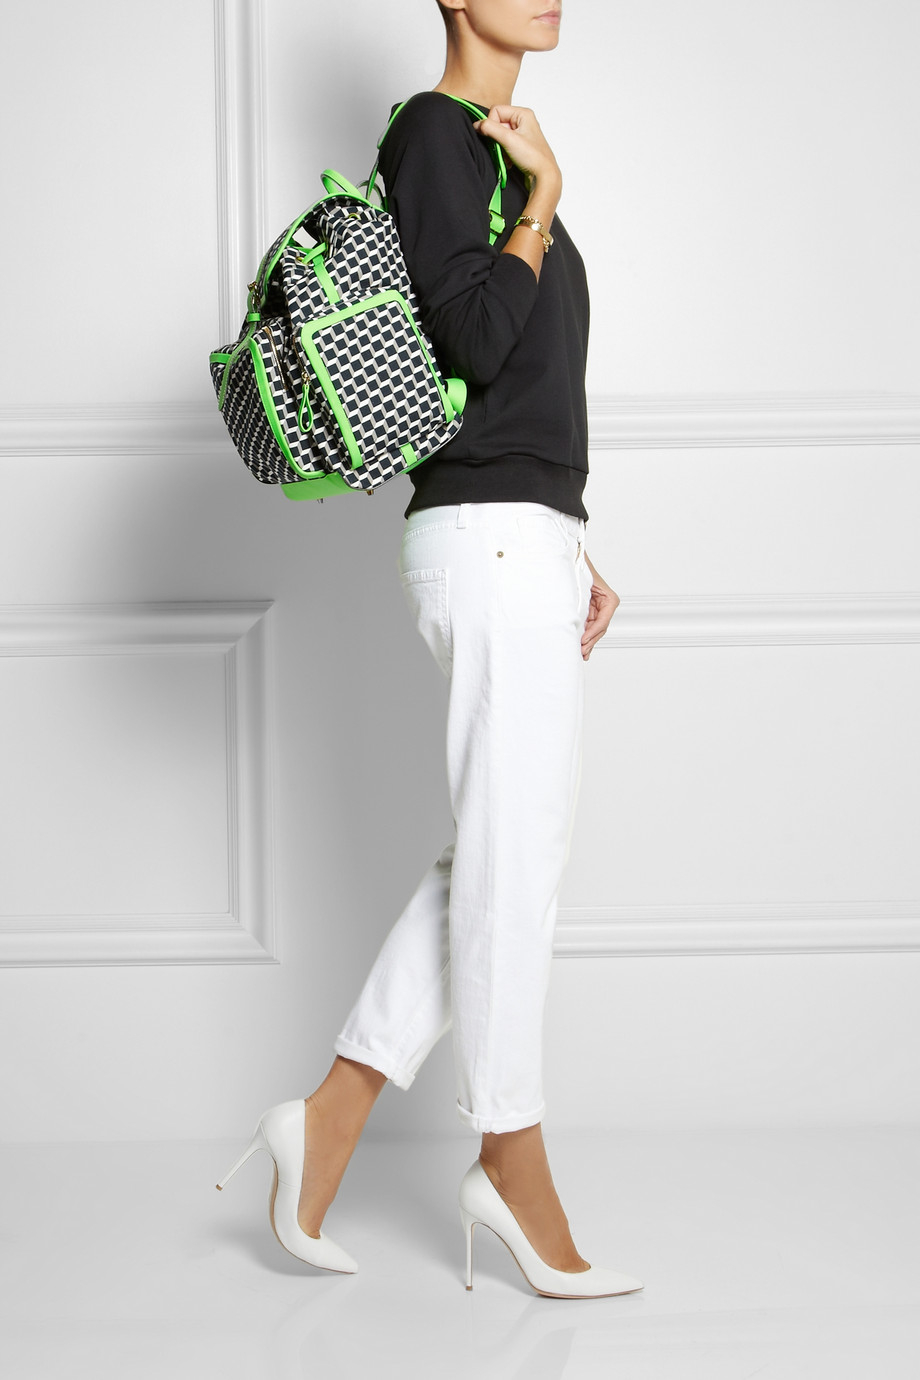 Pierre Hardy Neon Leather-Trimmed Printed Cotton-Canvas Backpack in Black (Green)